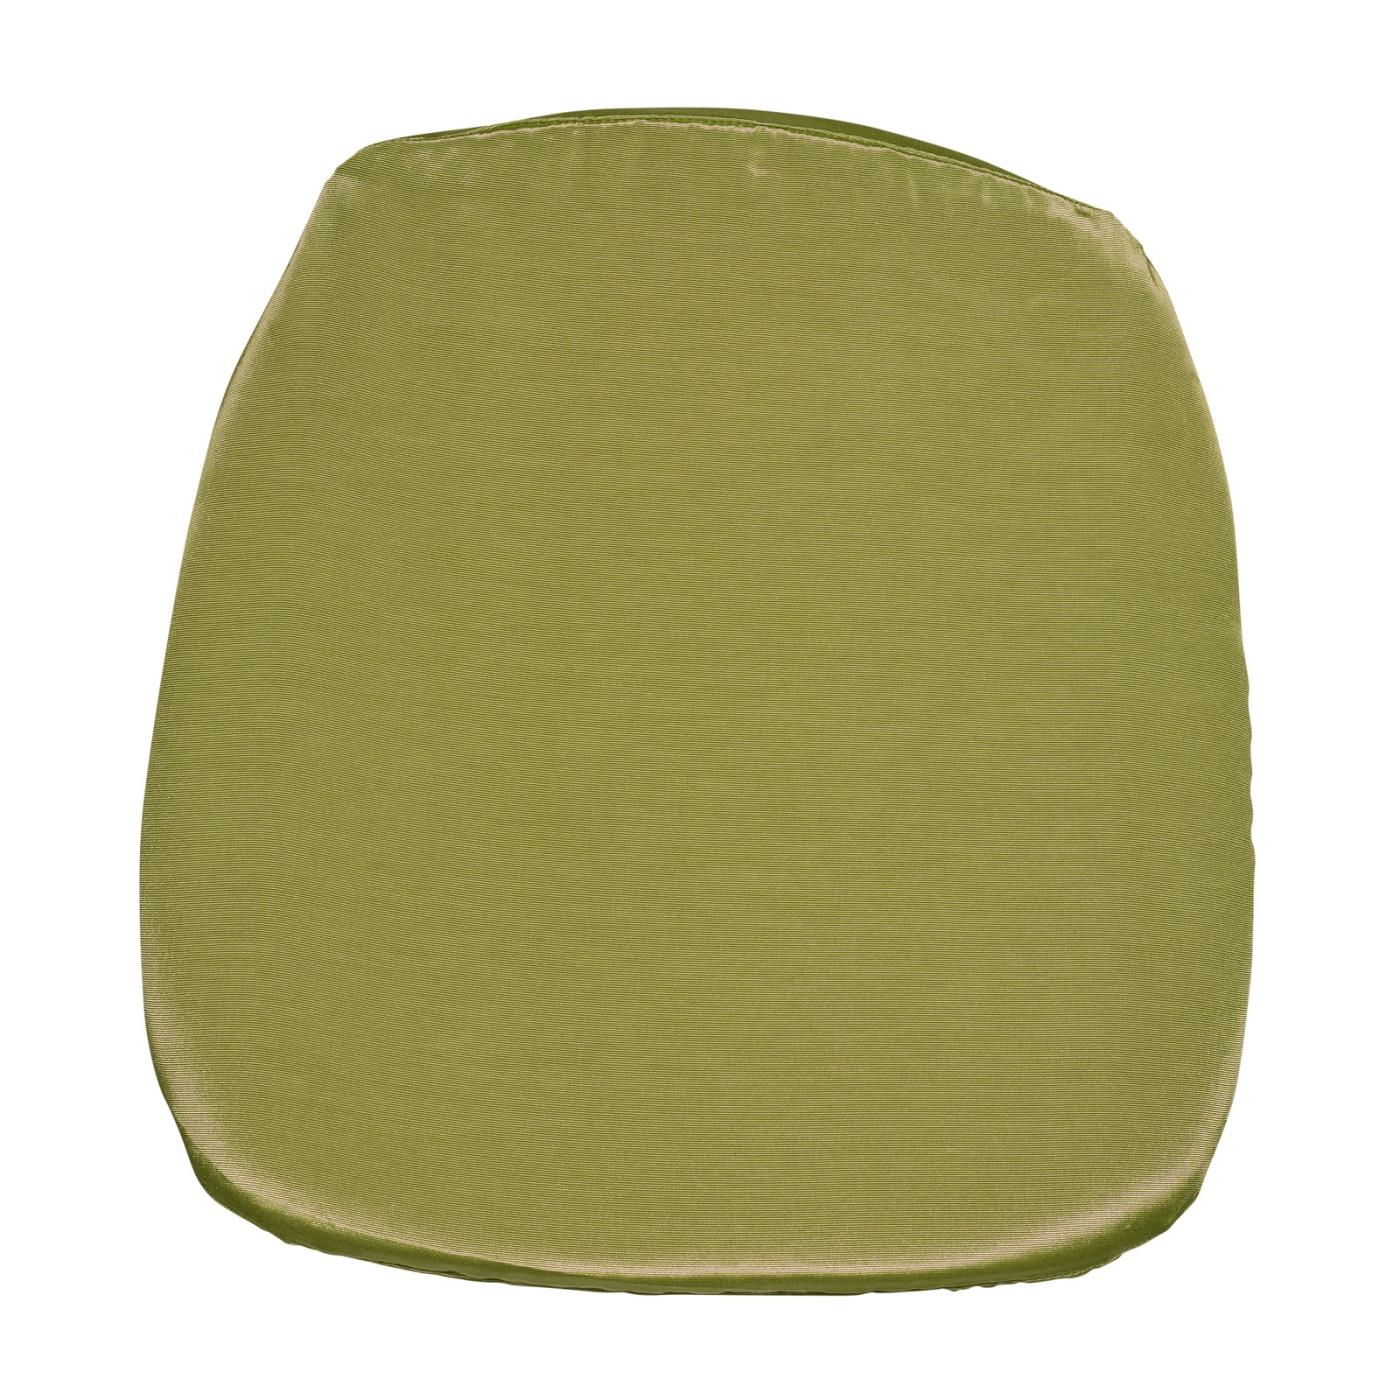 Bengaline Seat Cushion - Apple Green